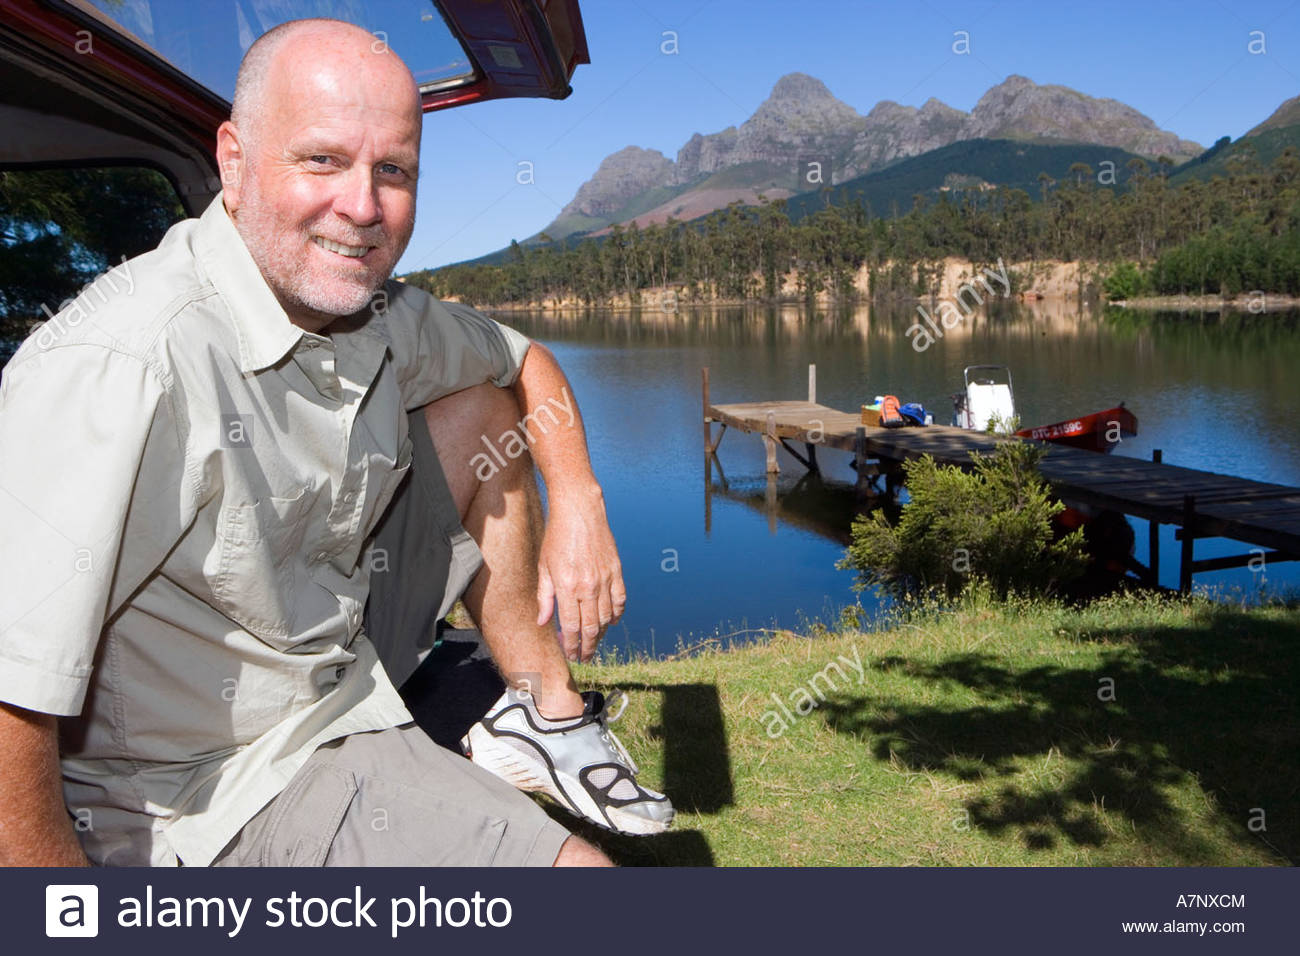 Mature man sitting in boot of parked SUV smiling side view portrait lake and jetty in background - Stock Image